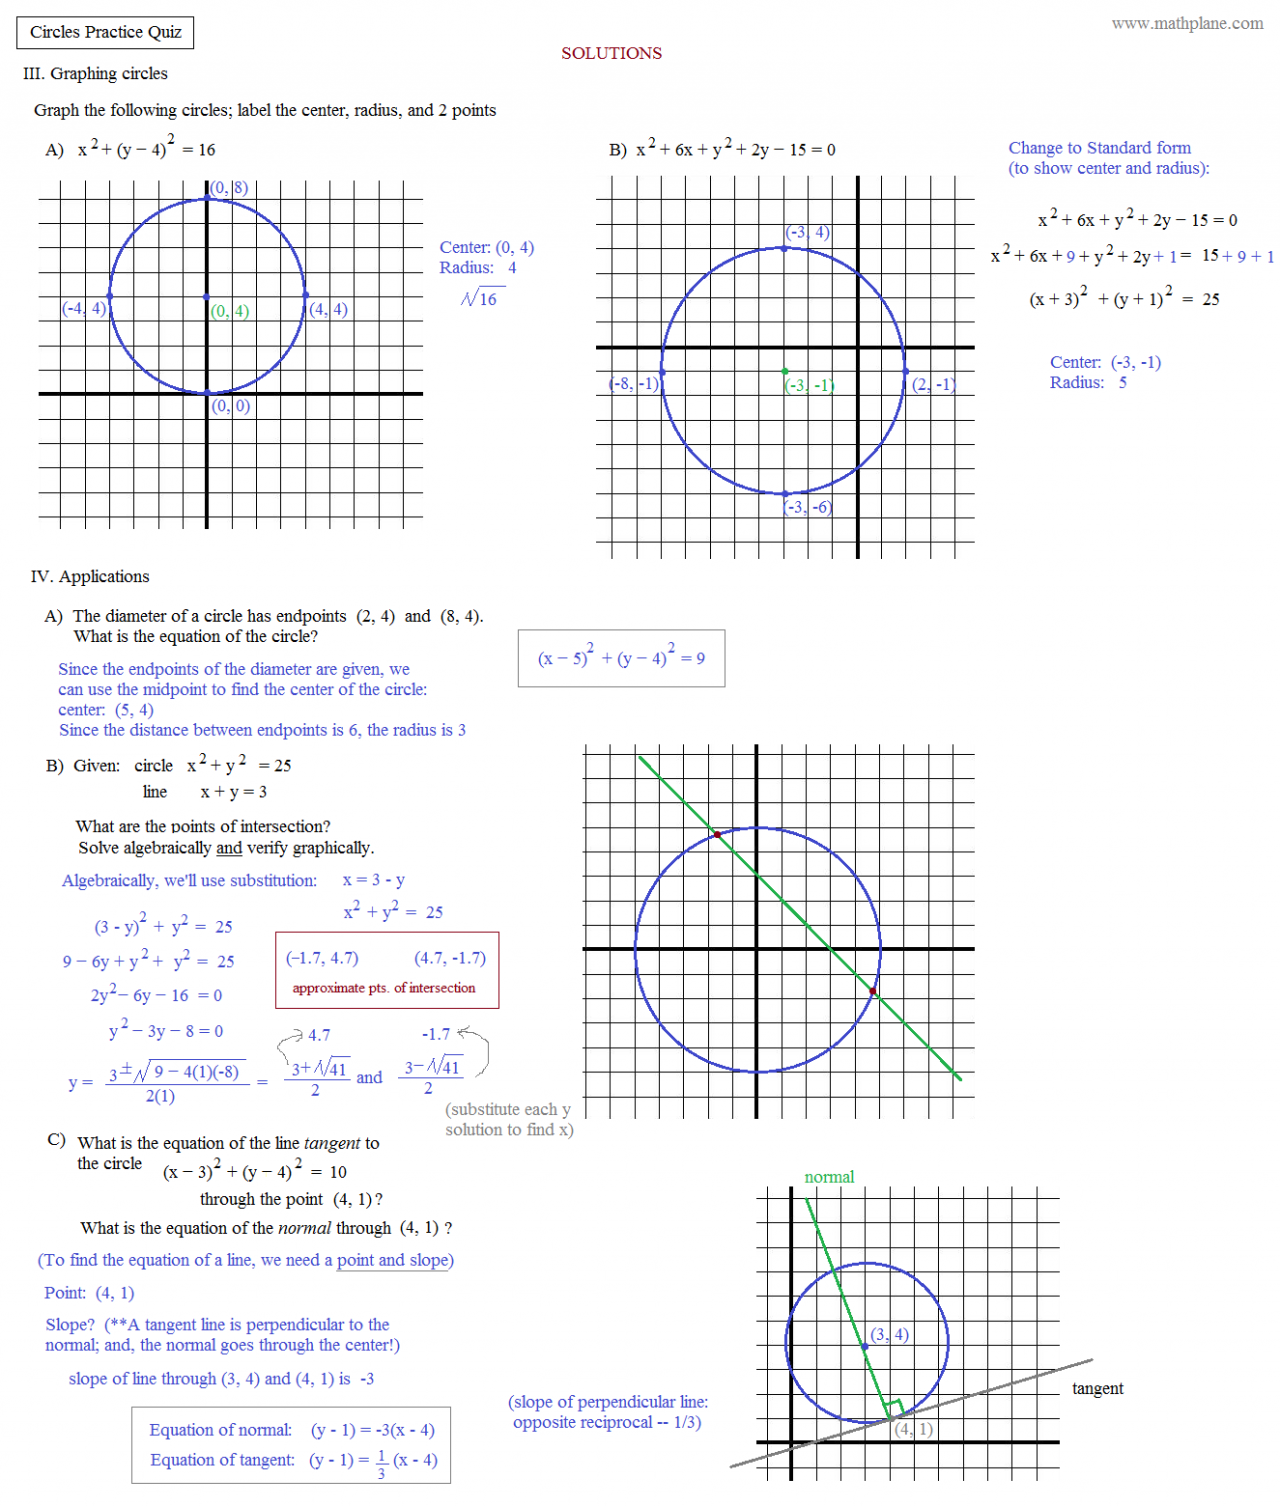 worksheet Writing Equations Of Circles graphing circles worksheet worksheets newsofthewired thousands algebra 2 conic sections equations of ellipses worksheets